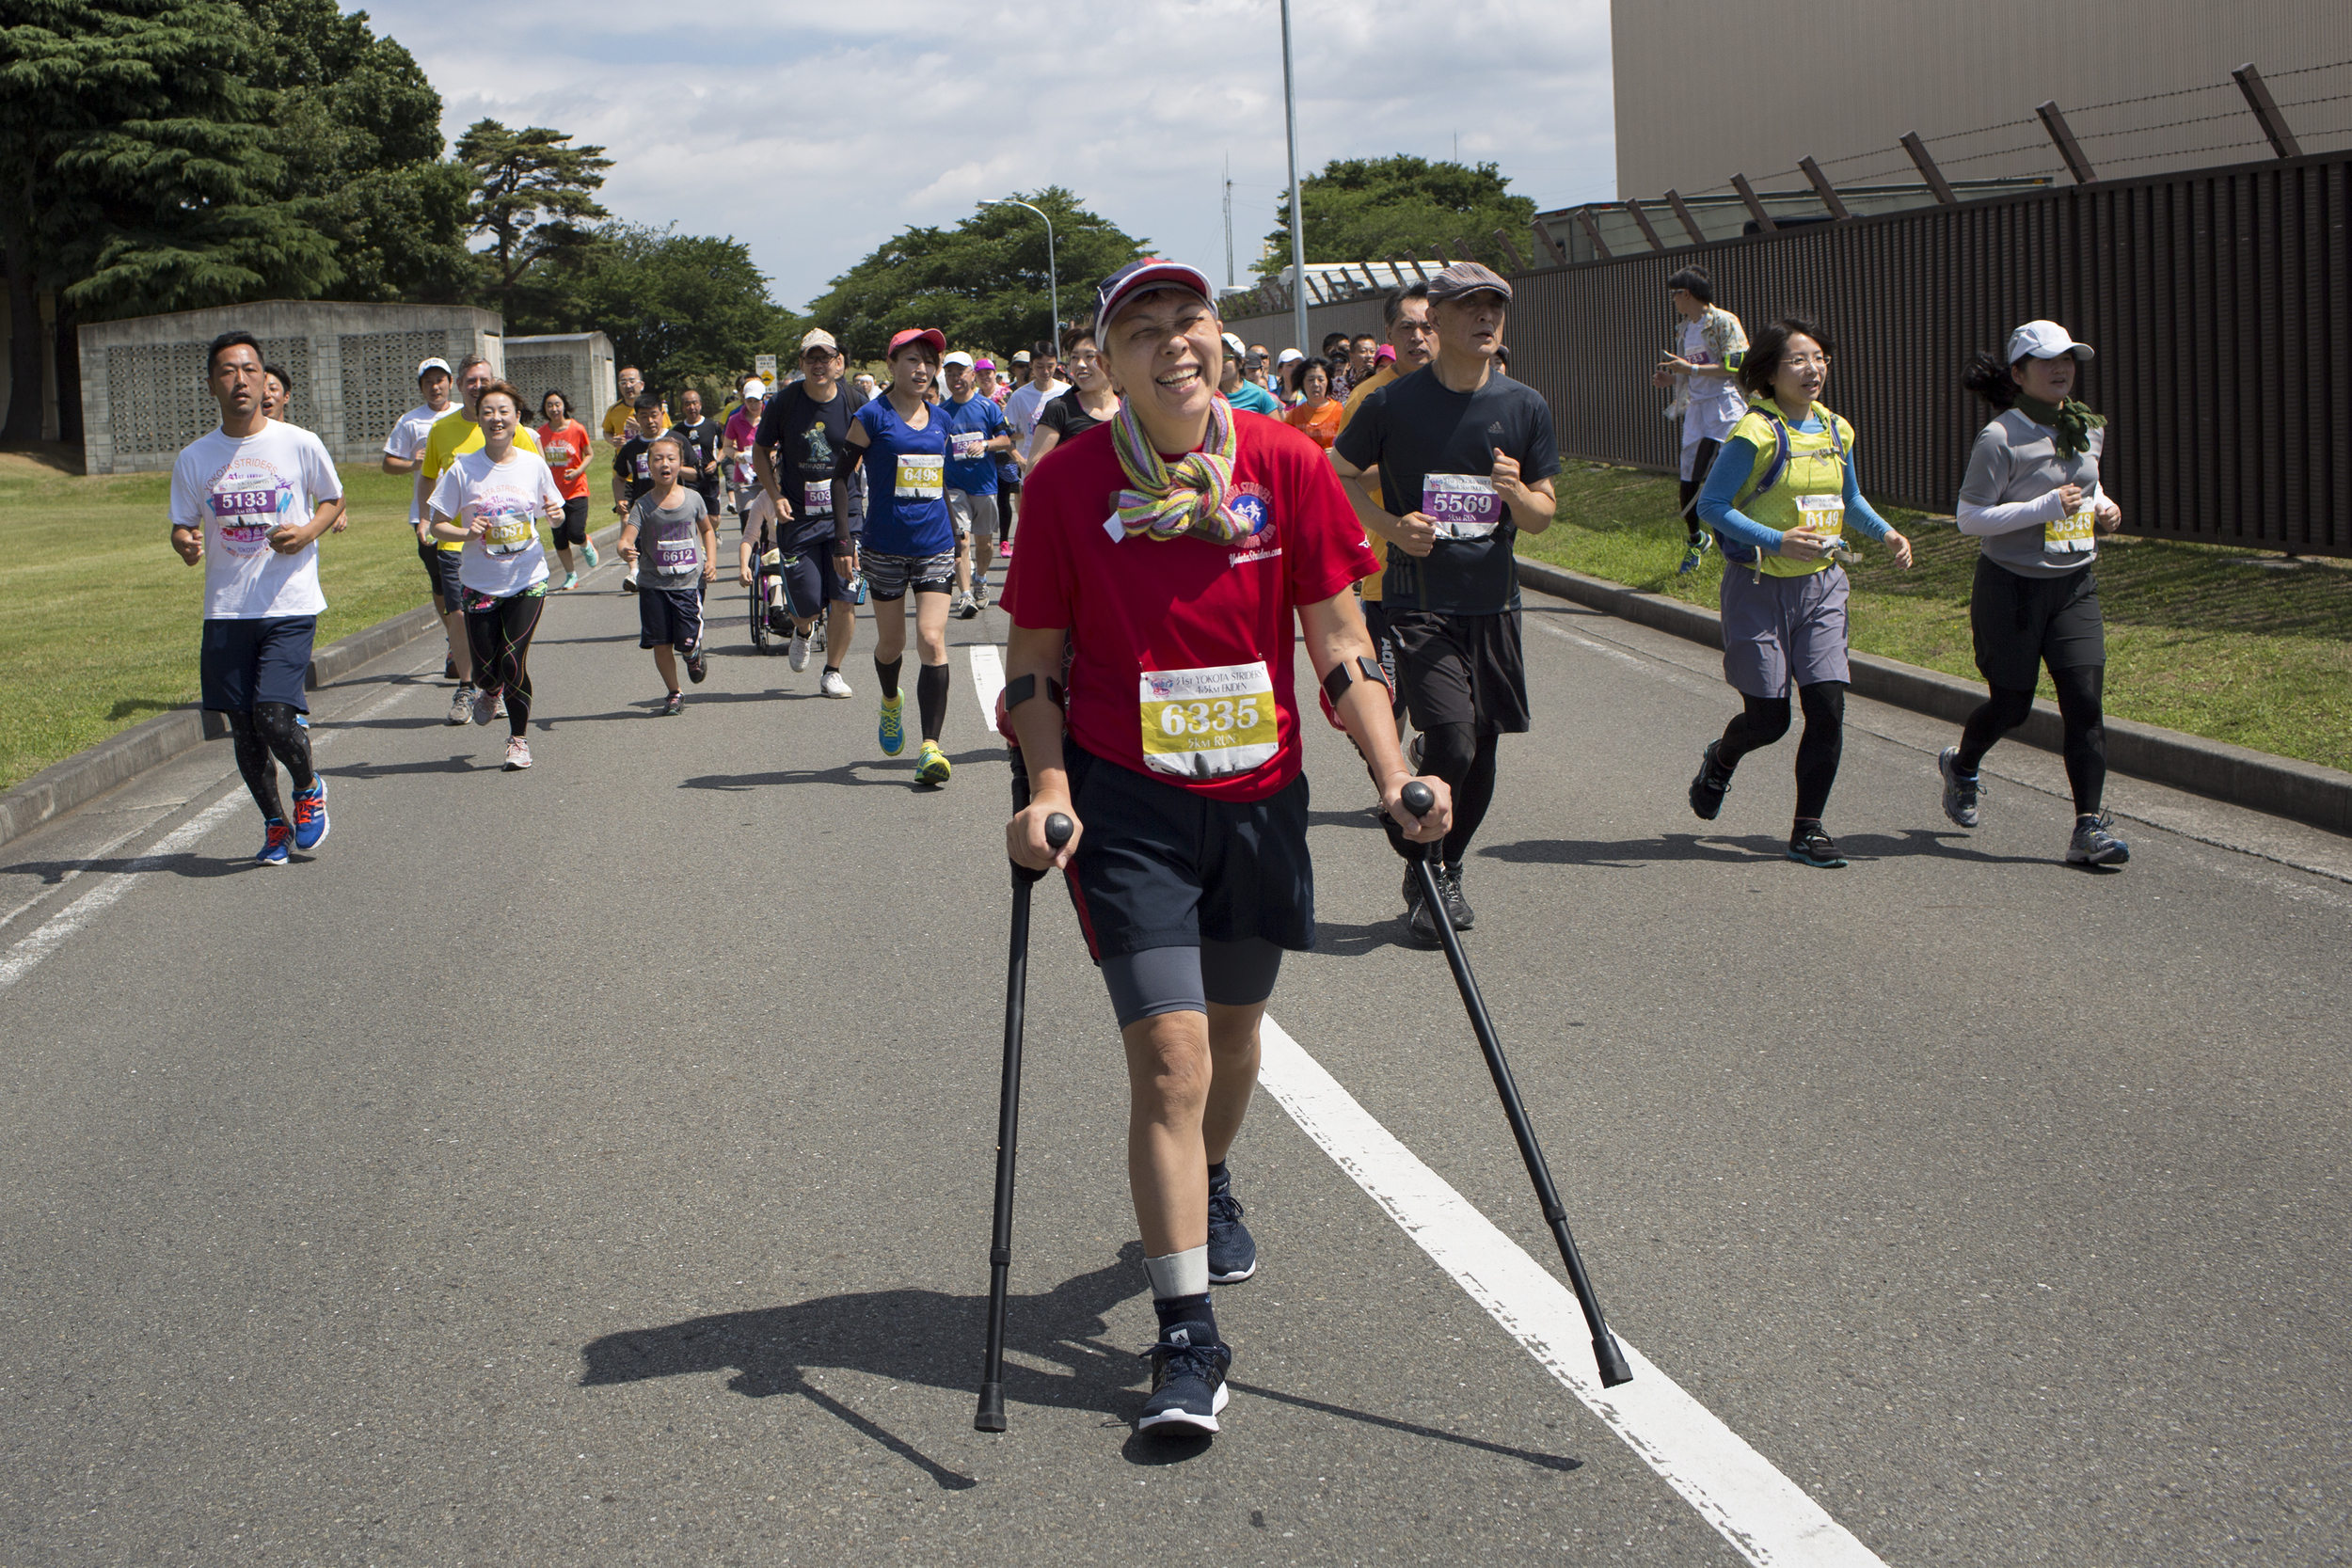 A disabled runner enjoys the 31st annual Ekiden 5K Run at Yokota Air Base, Japan, June 7, 2015. More than 5,800 runners and their families from on- and off-base participated in the event. (U.S. Air Force photo by Osakabe Yasuo/Released)